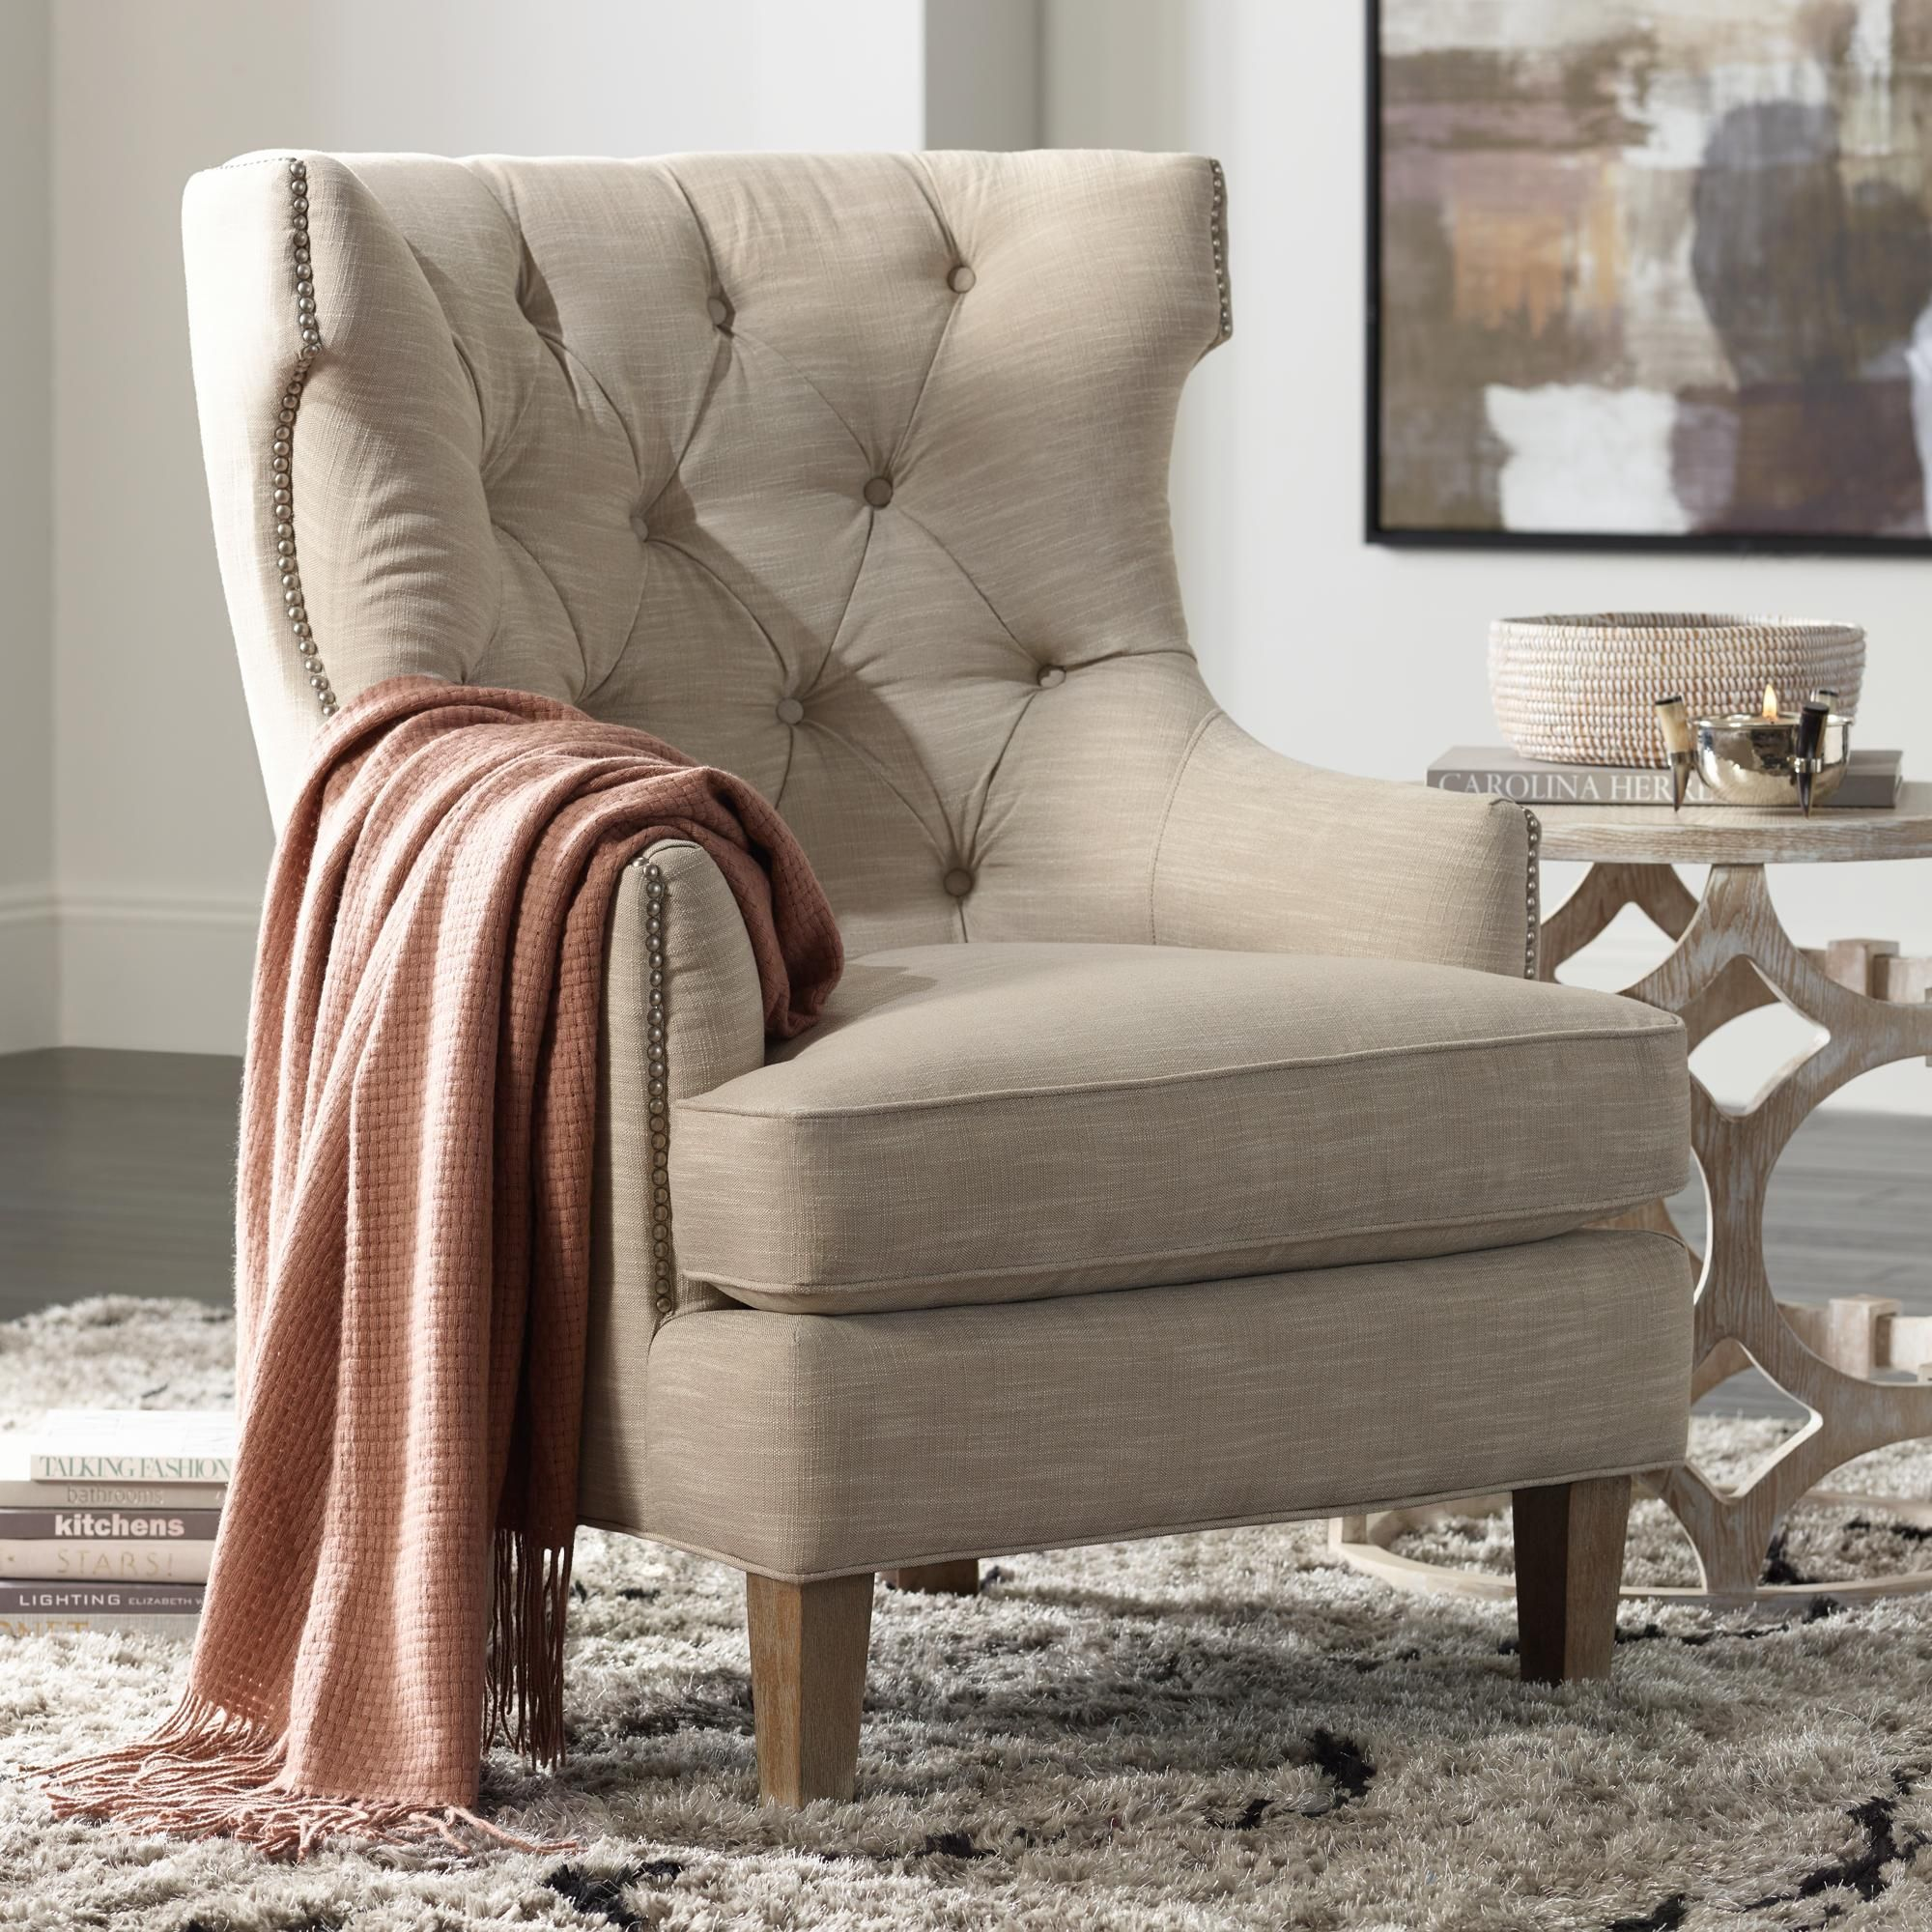 Rand Chair From Ethan Allen Inside Seating Area 24 Wide X 22